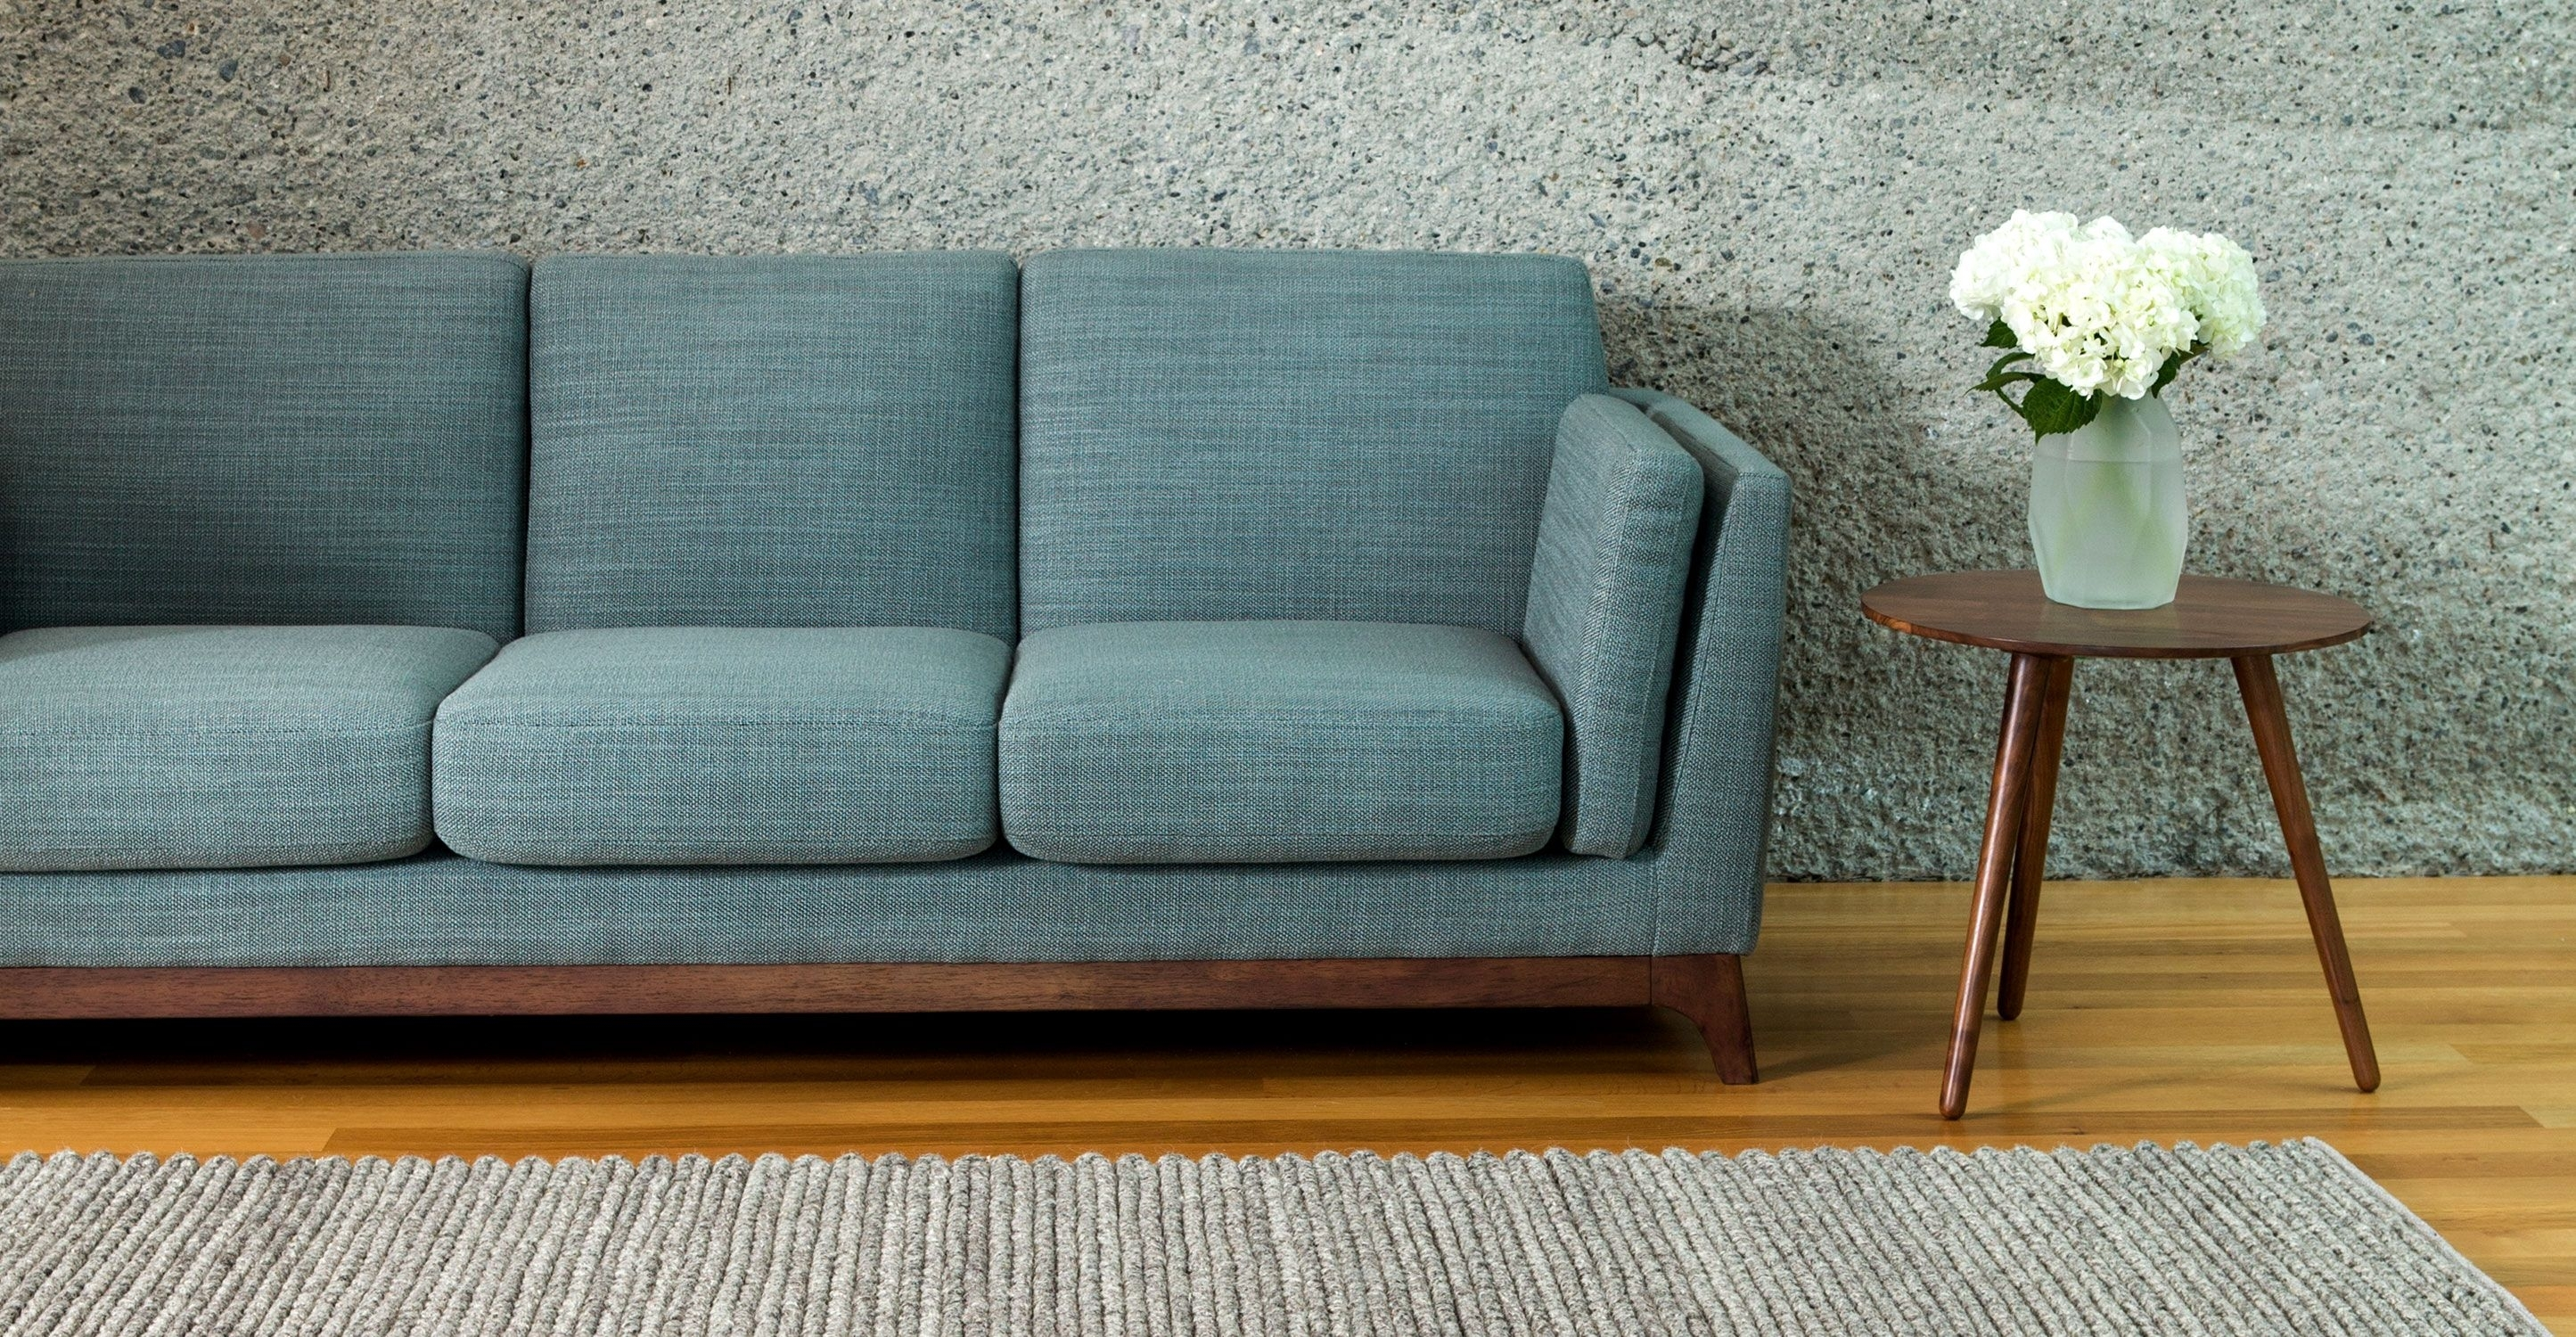 Blue Sofa 3 Seater With Solid Wood Legs | Article Ceni Modern with Aqua Sofas (Image 4 of 10)